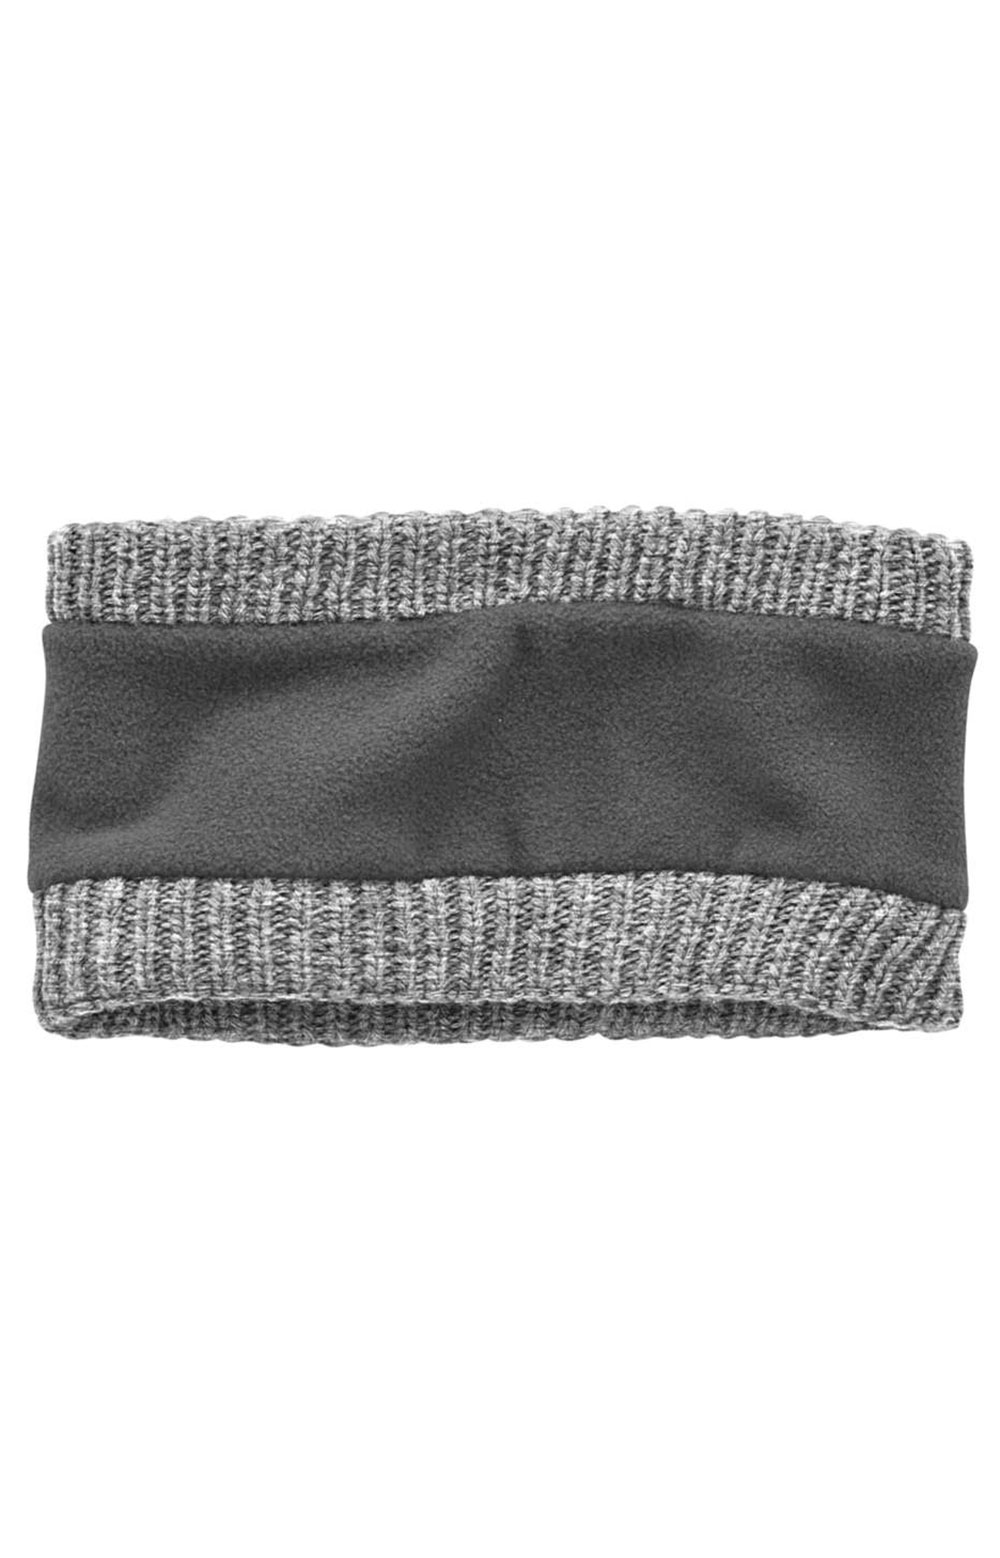 (104402) Knit Fleece Lined Headband - Heather Grey 2